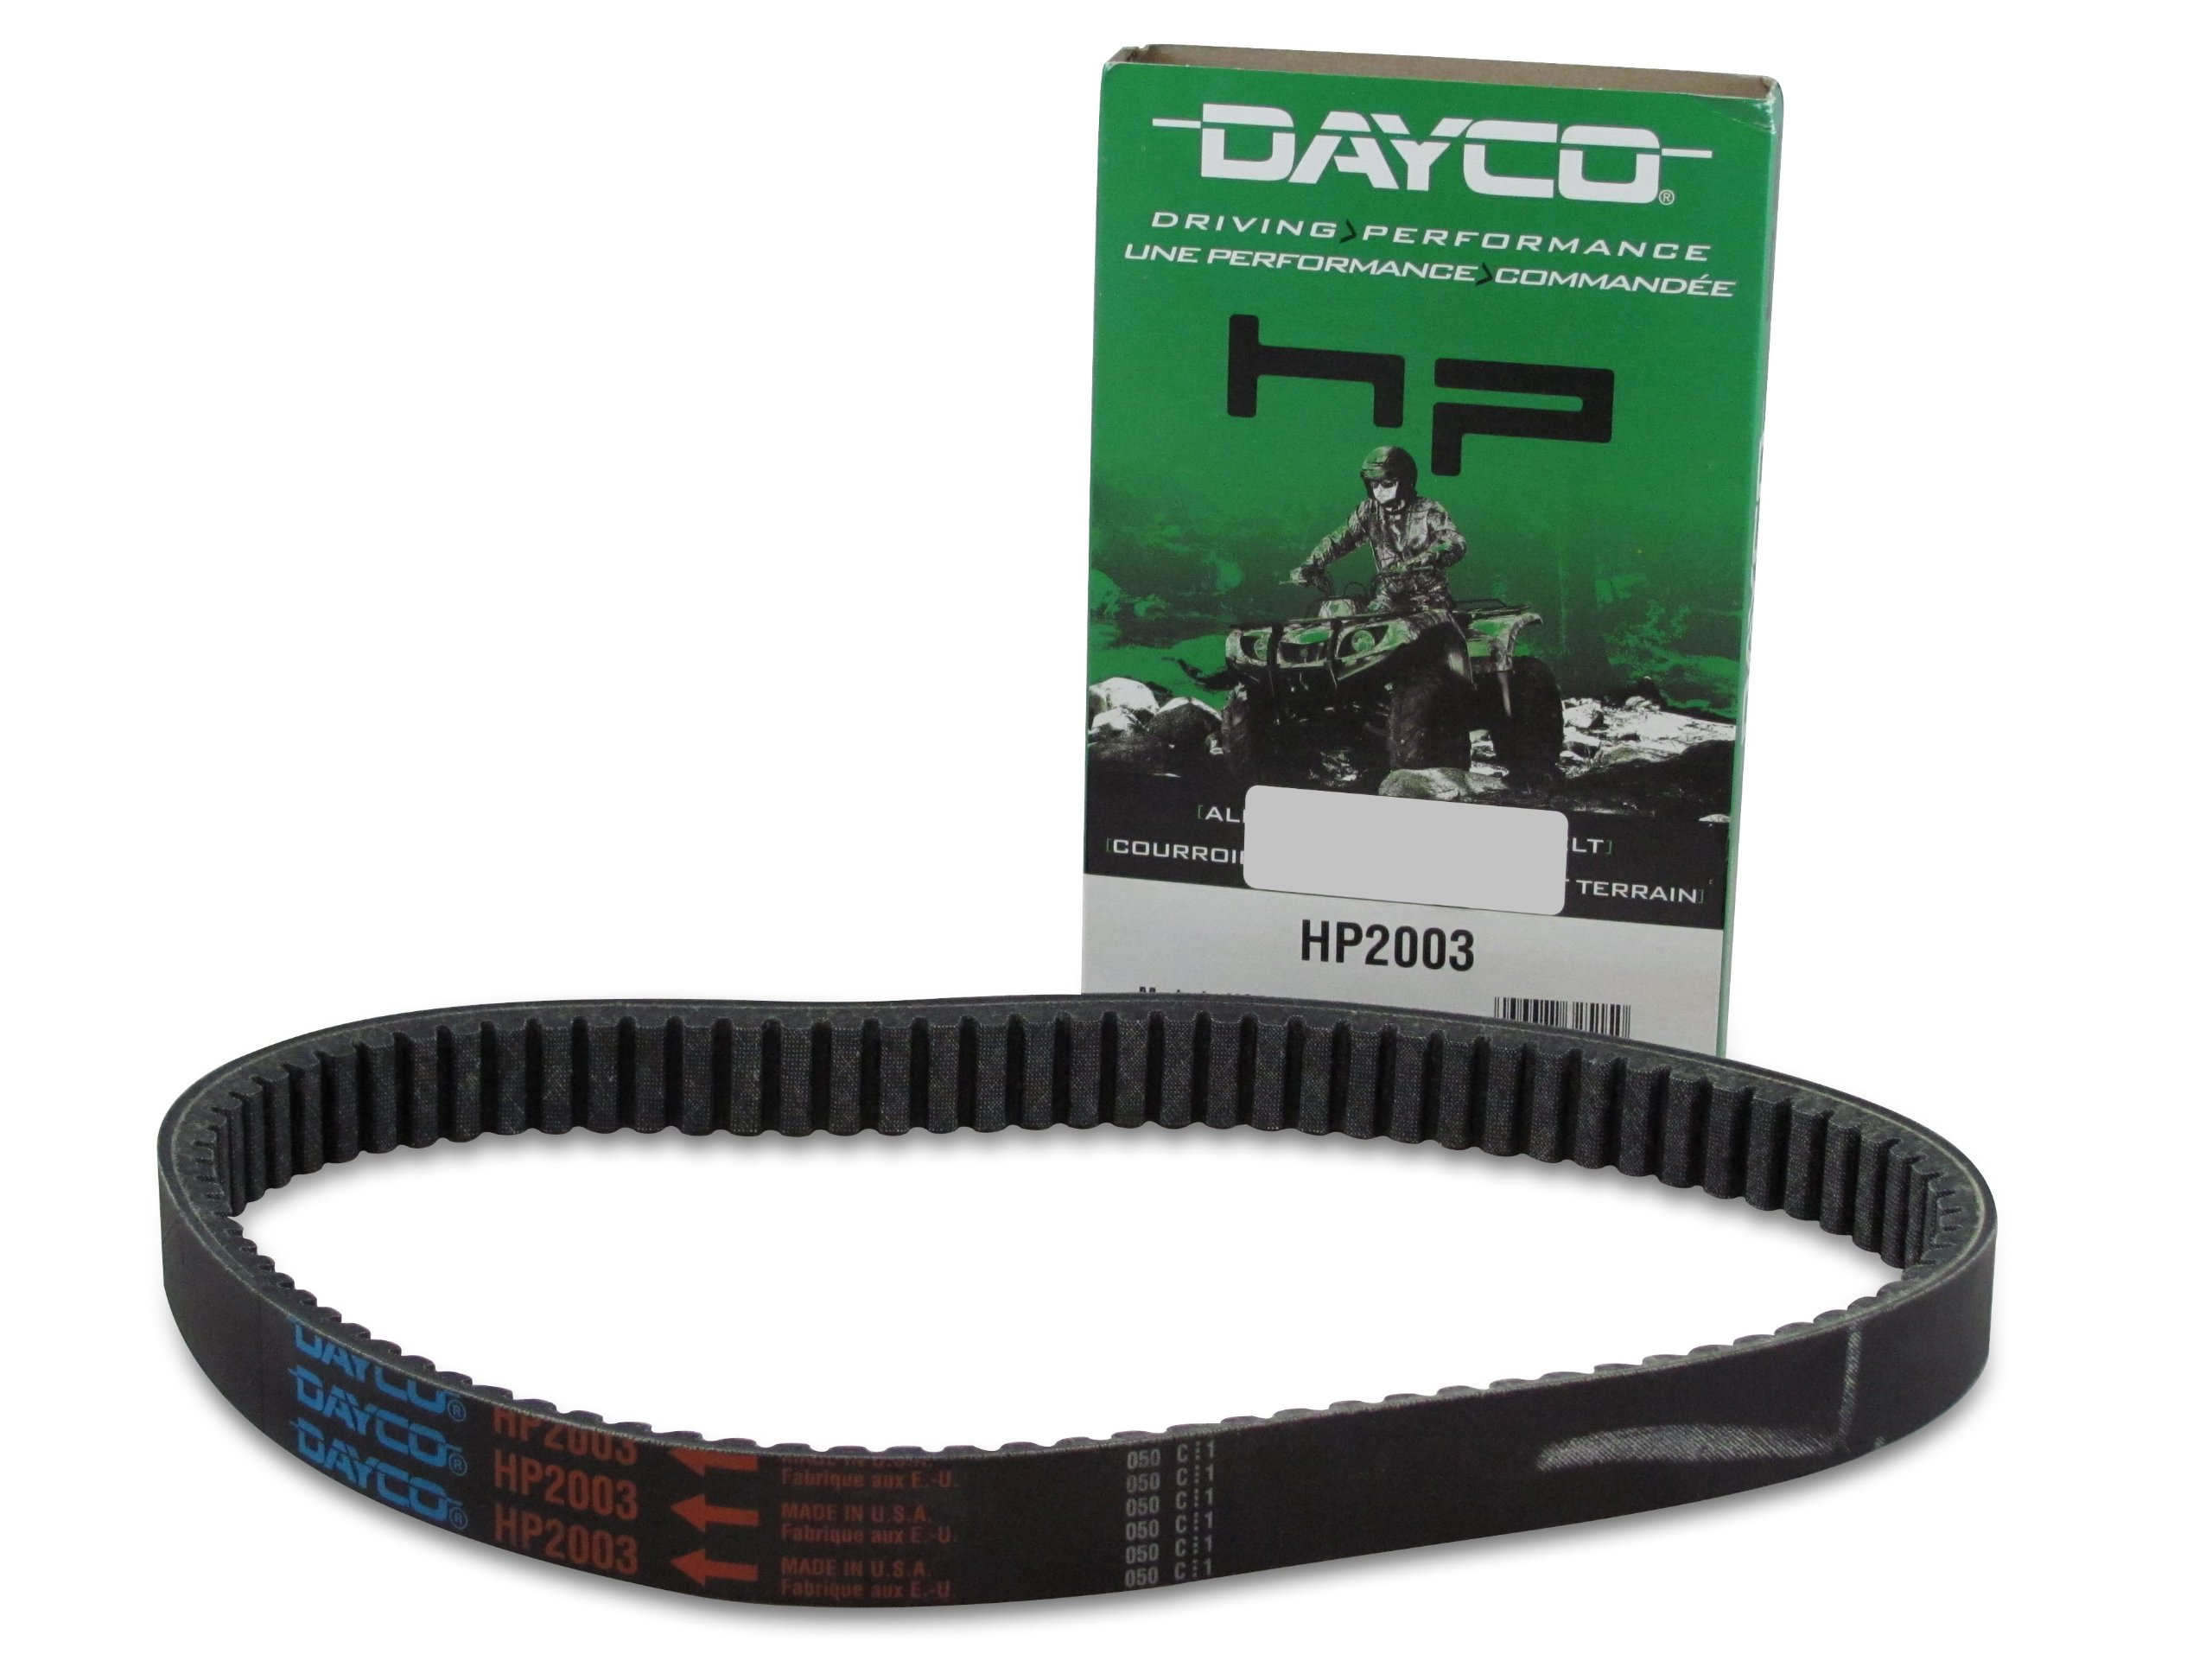 MOTOKU Drive Belt for Polaris Trailblazer 250 330 Trail Boss 350L Worker 500 Xplorer 400 ATV UTV Quad